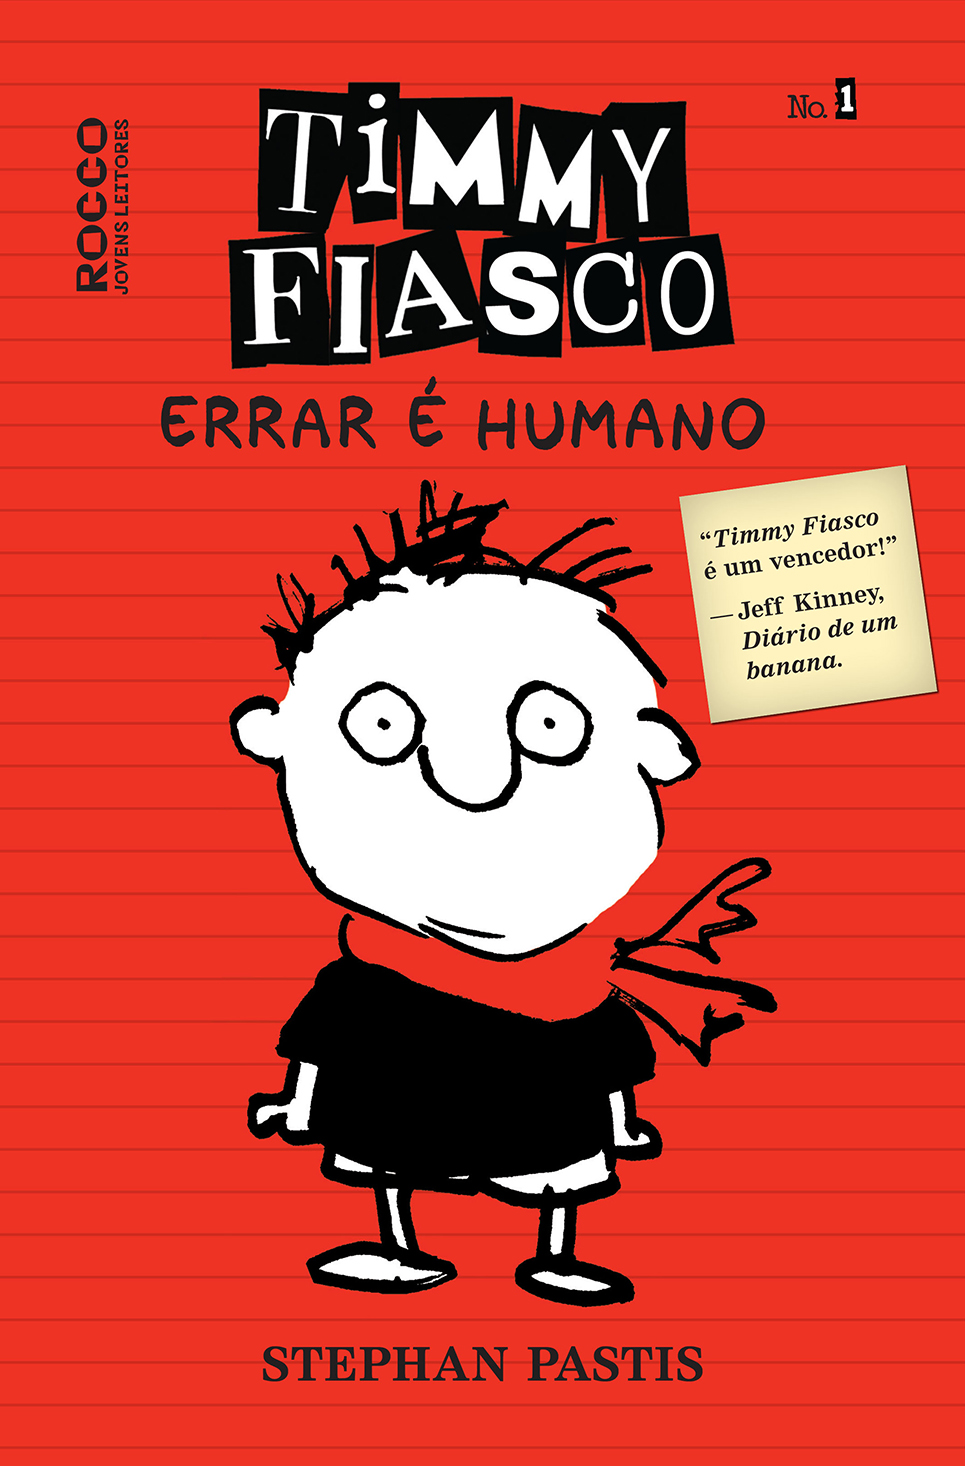 Jimmy Fiasco - Stephan Pastis